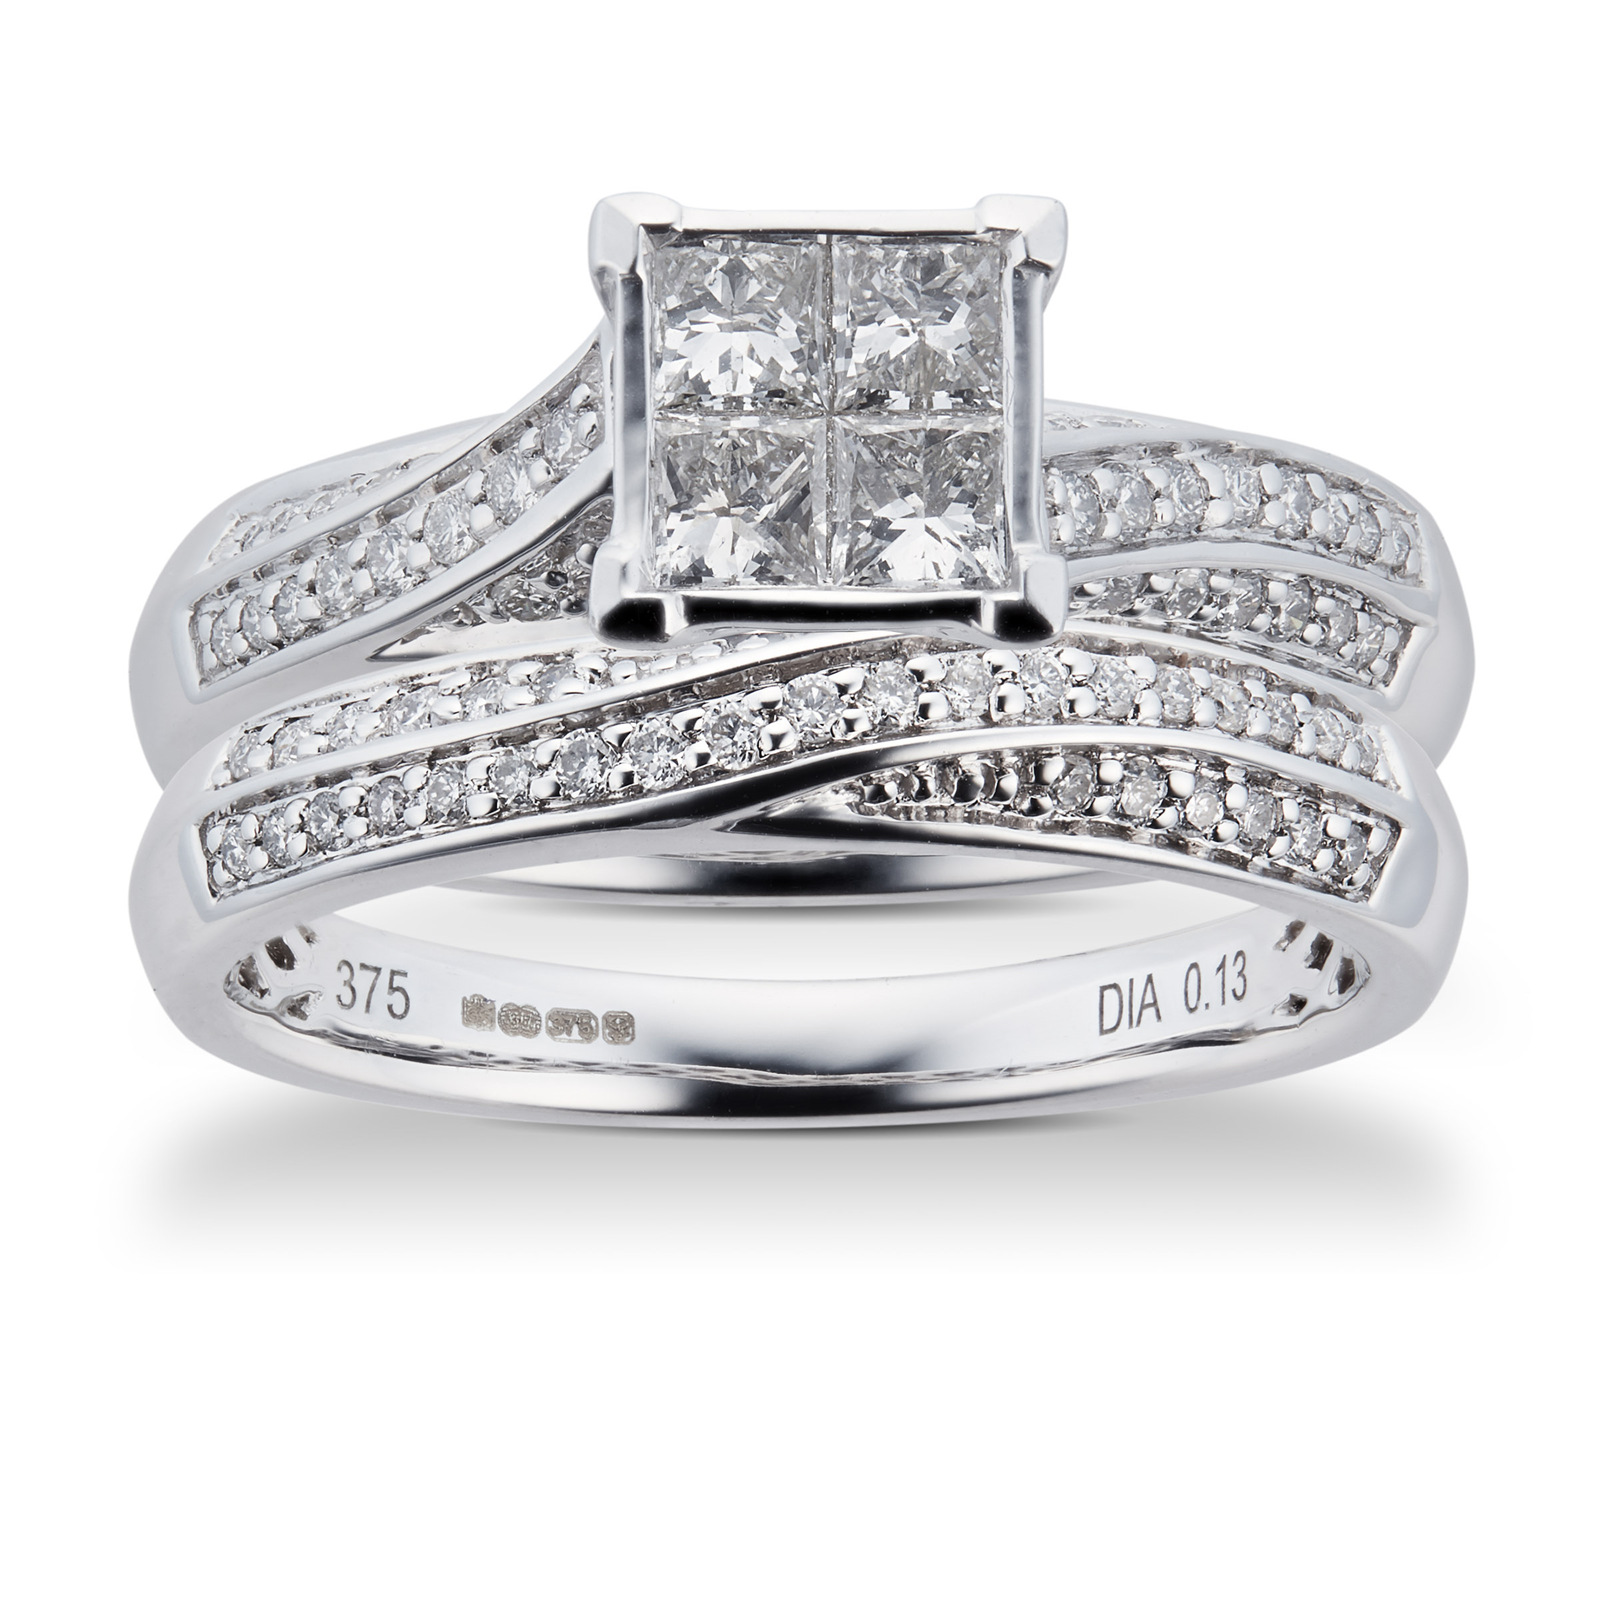 Princess and Brilliant Cut 0.76 Carat Total Weight Diamond Bridal Set in 9 Carat White Gold  Ring Size K